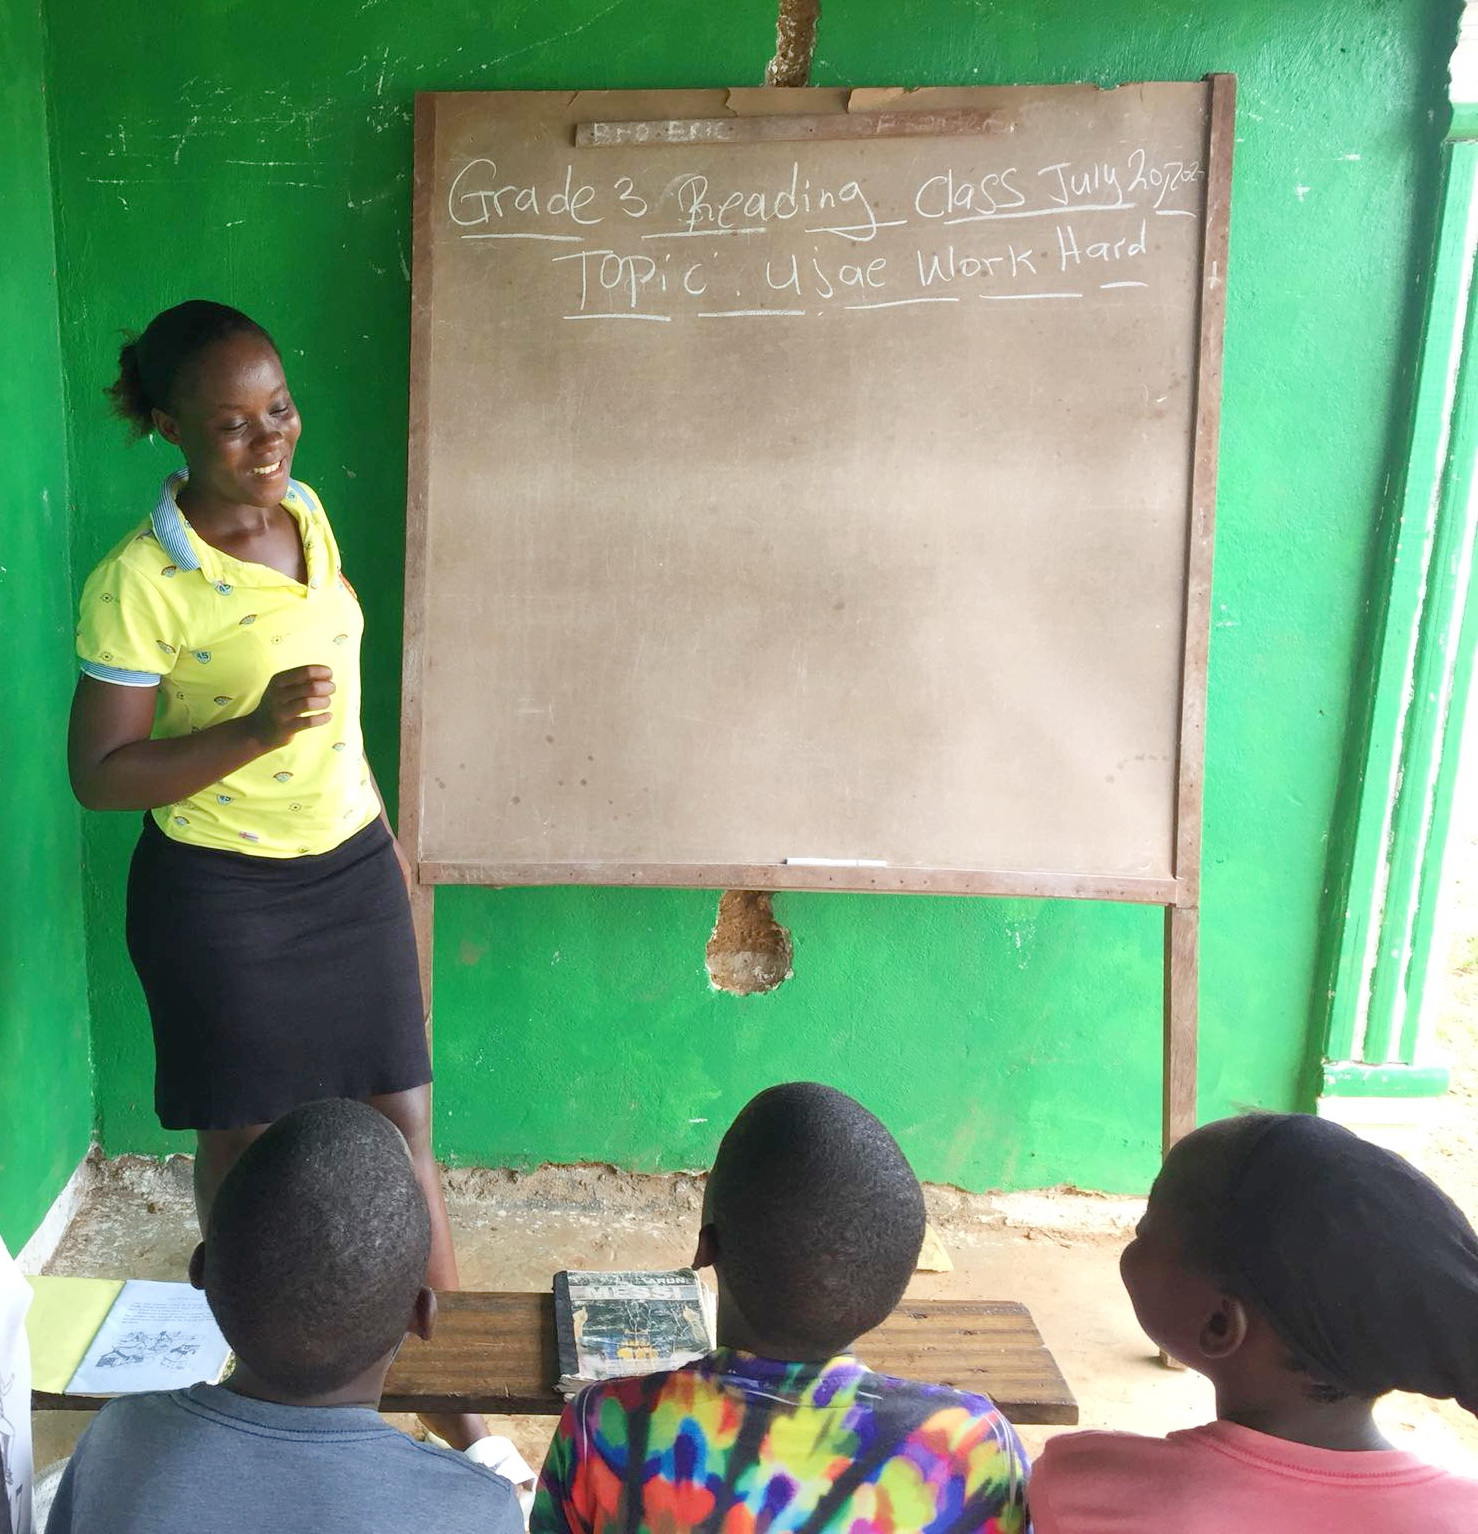 Dabopillar will be in Grade 12 this year. She is teaching the Grade 3 students.